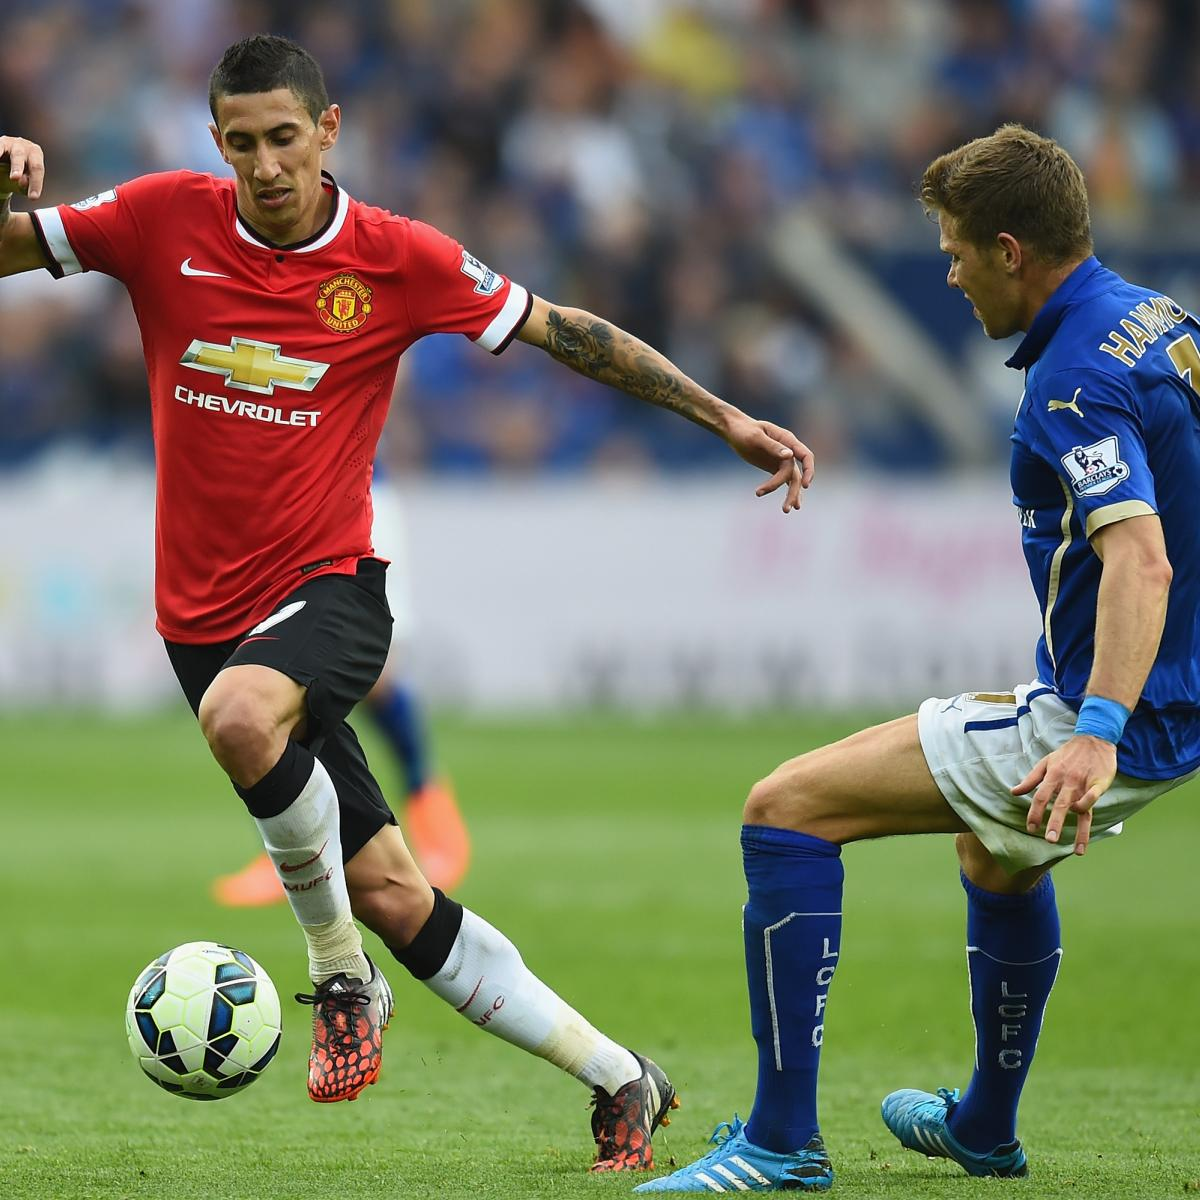 Manchester United 3 1 Huddersfield Result: Leicester Vs. Manchester United: Winners And Losers From